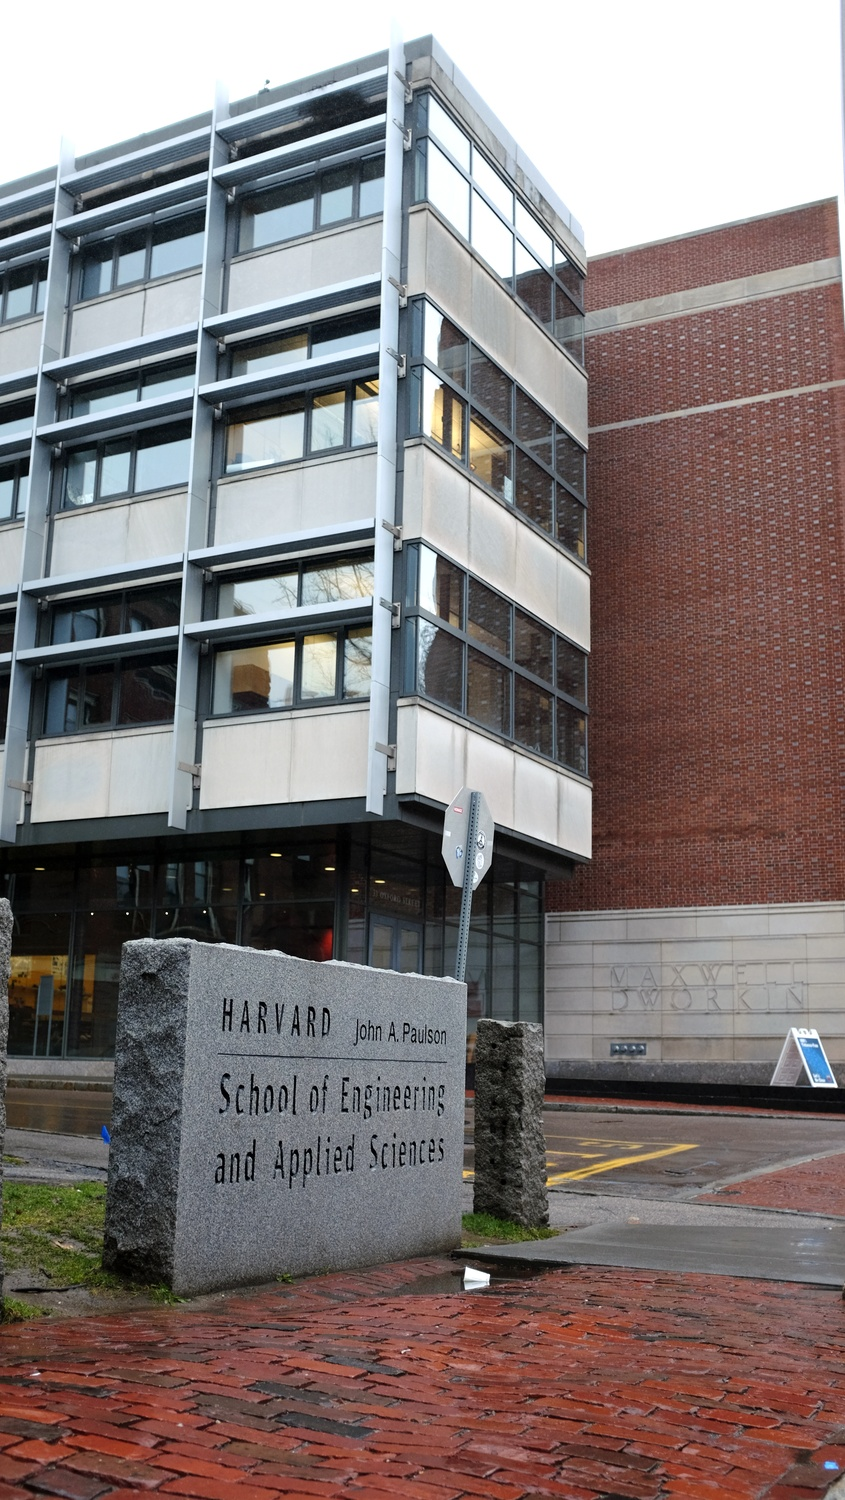 The School of Engineering and Applied Sciences, where the new Environmental Engineering concentration will be housed.